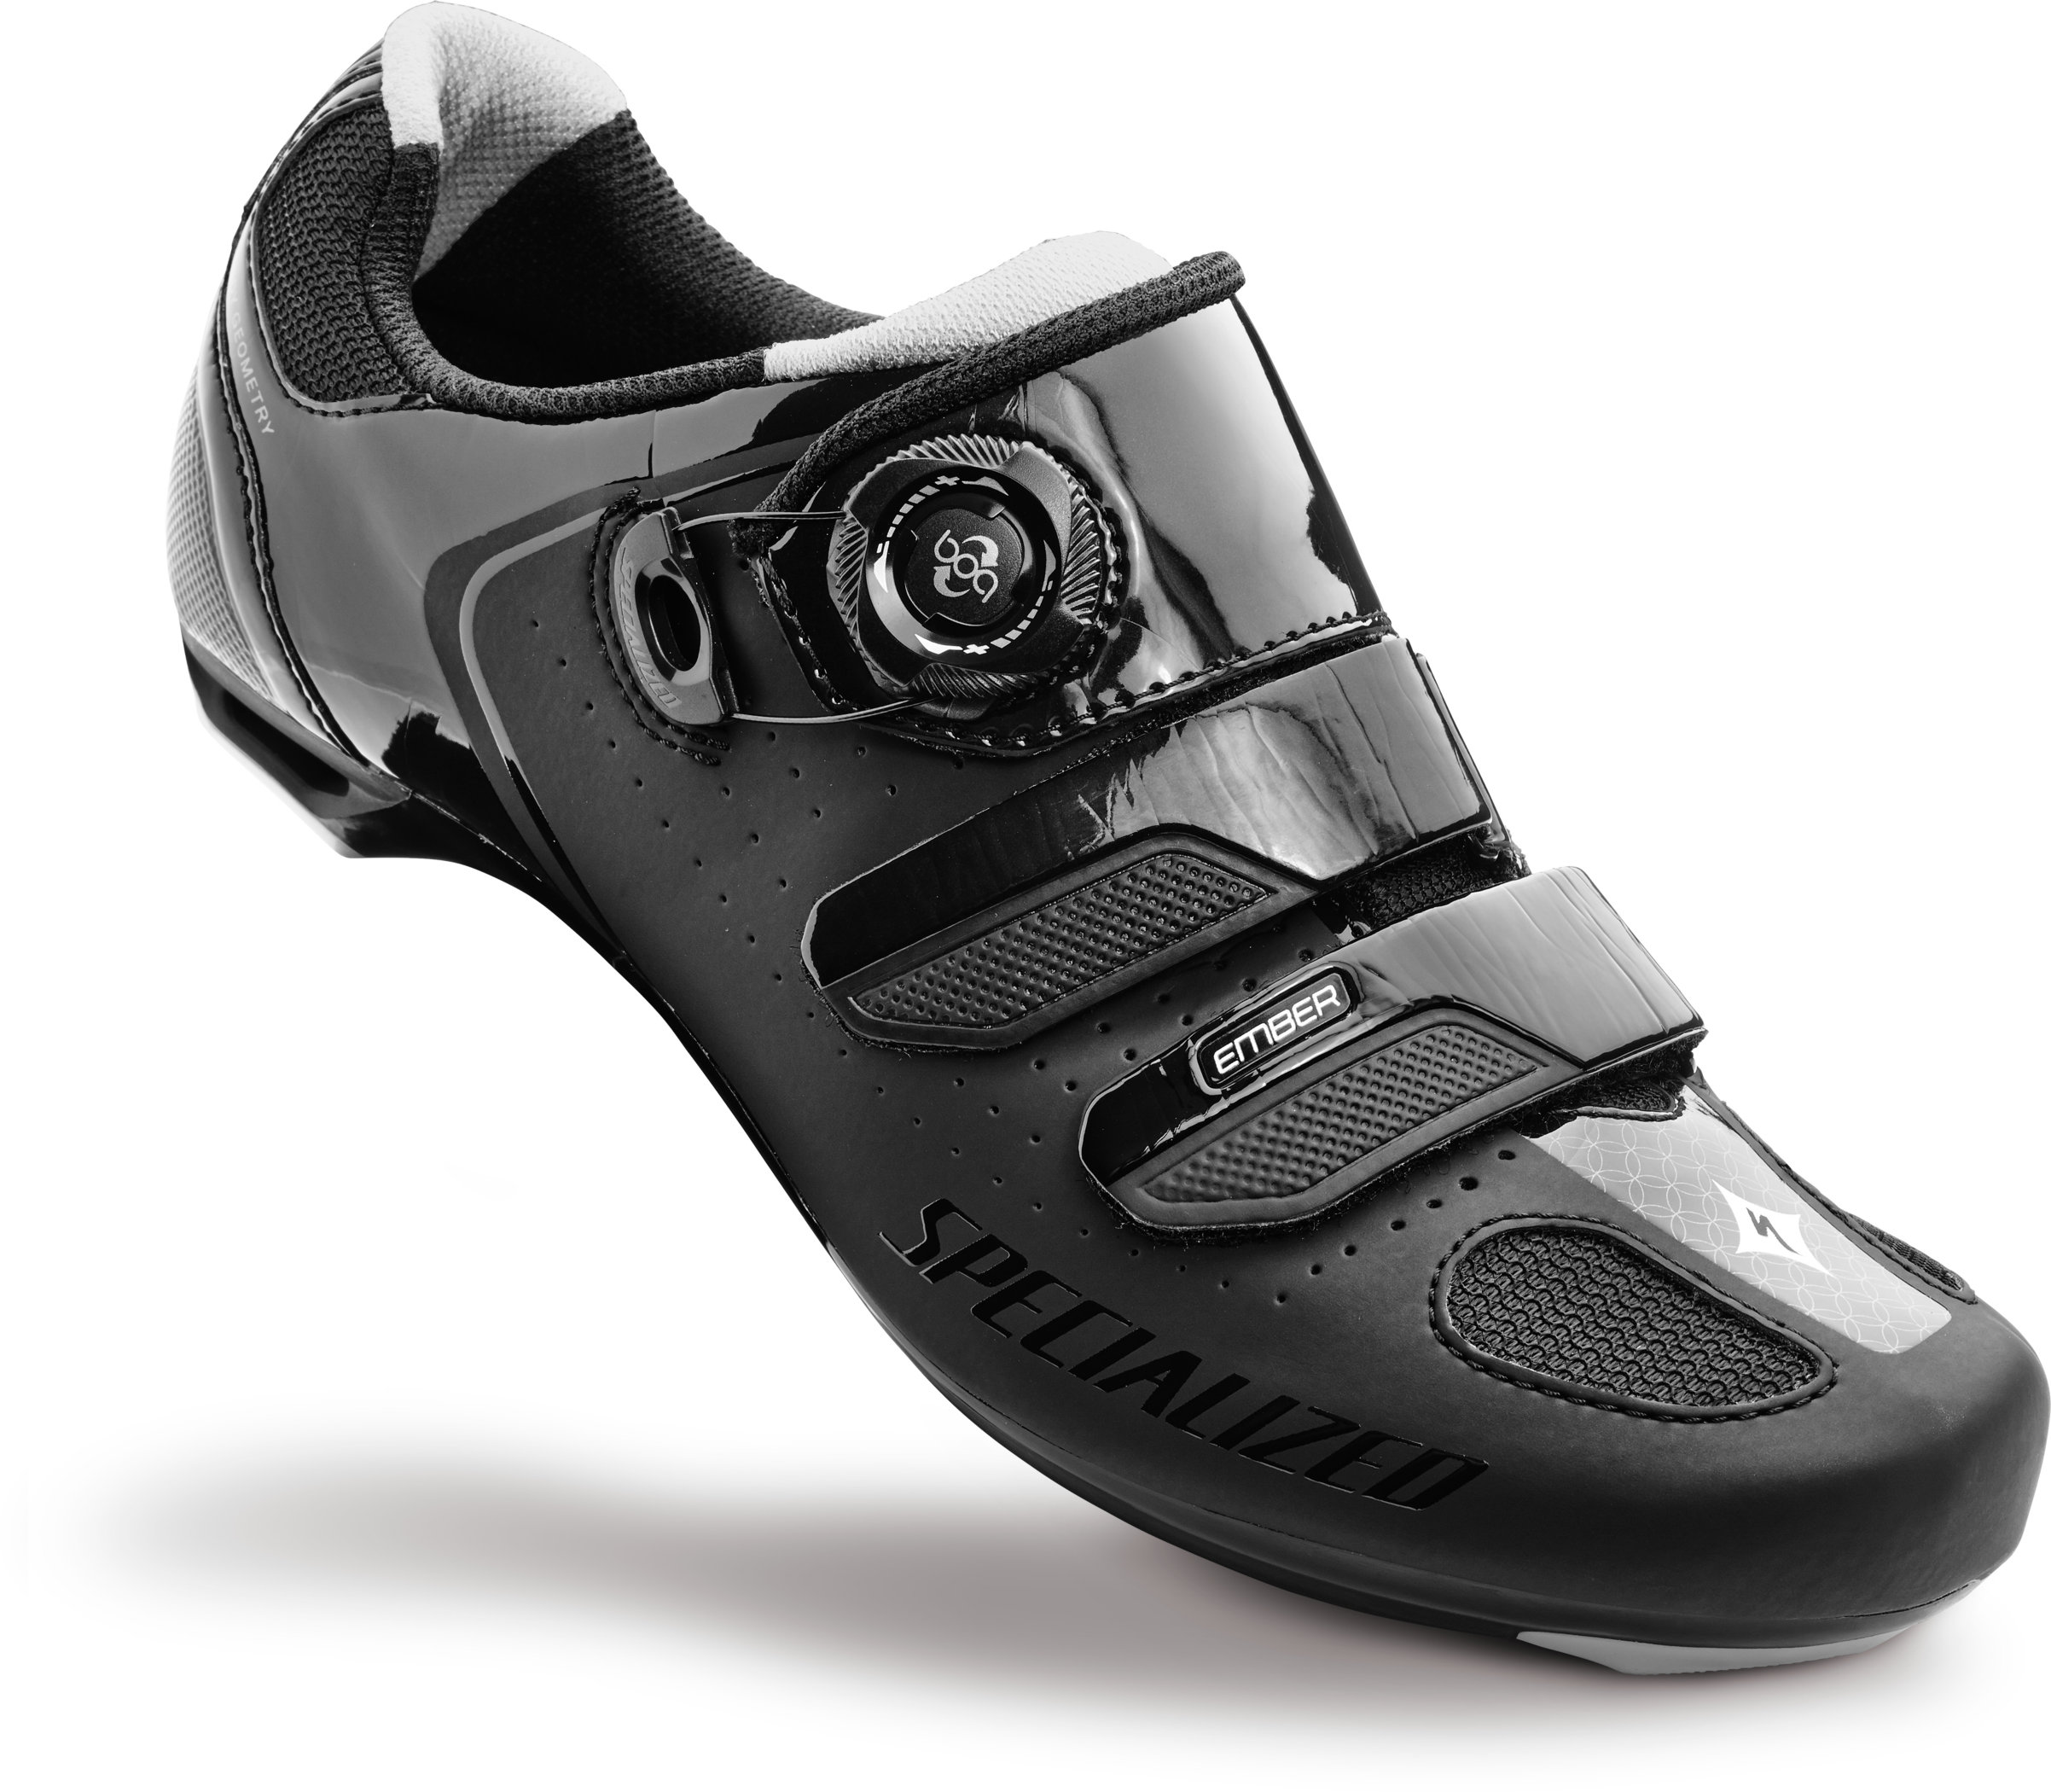 SPECIALIZED EMBER WMN RD SHOE BLK/SIL 42.5/10.75 - Bikedreams & Dustbikes